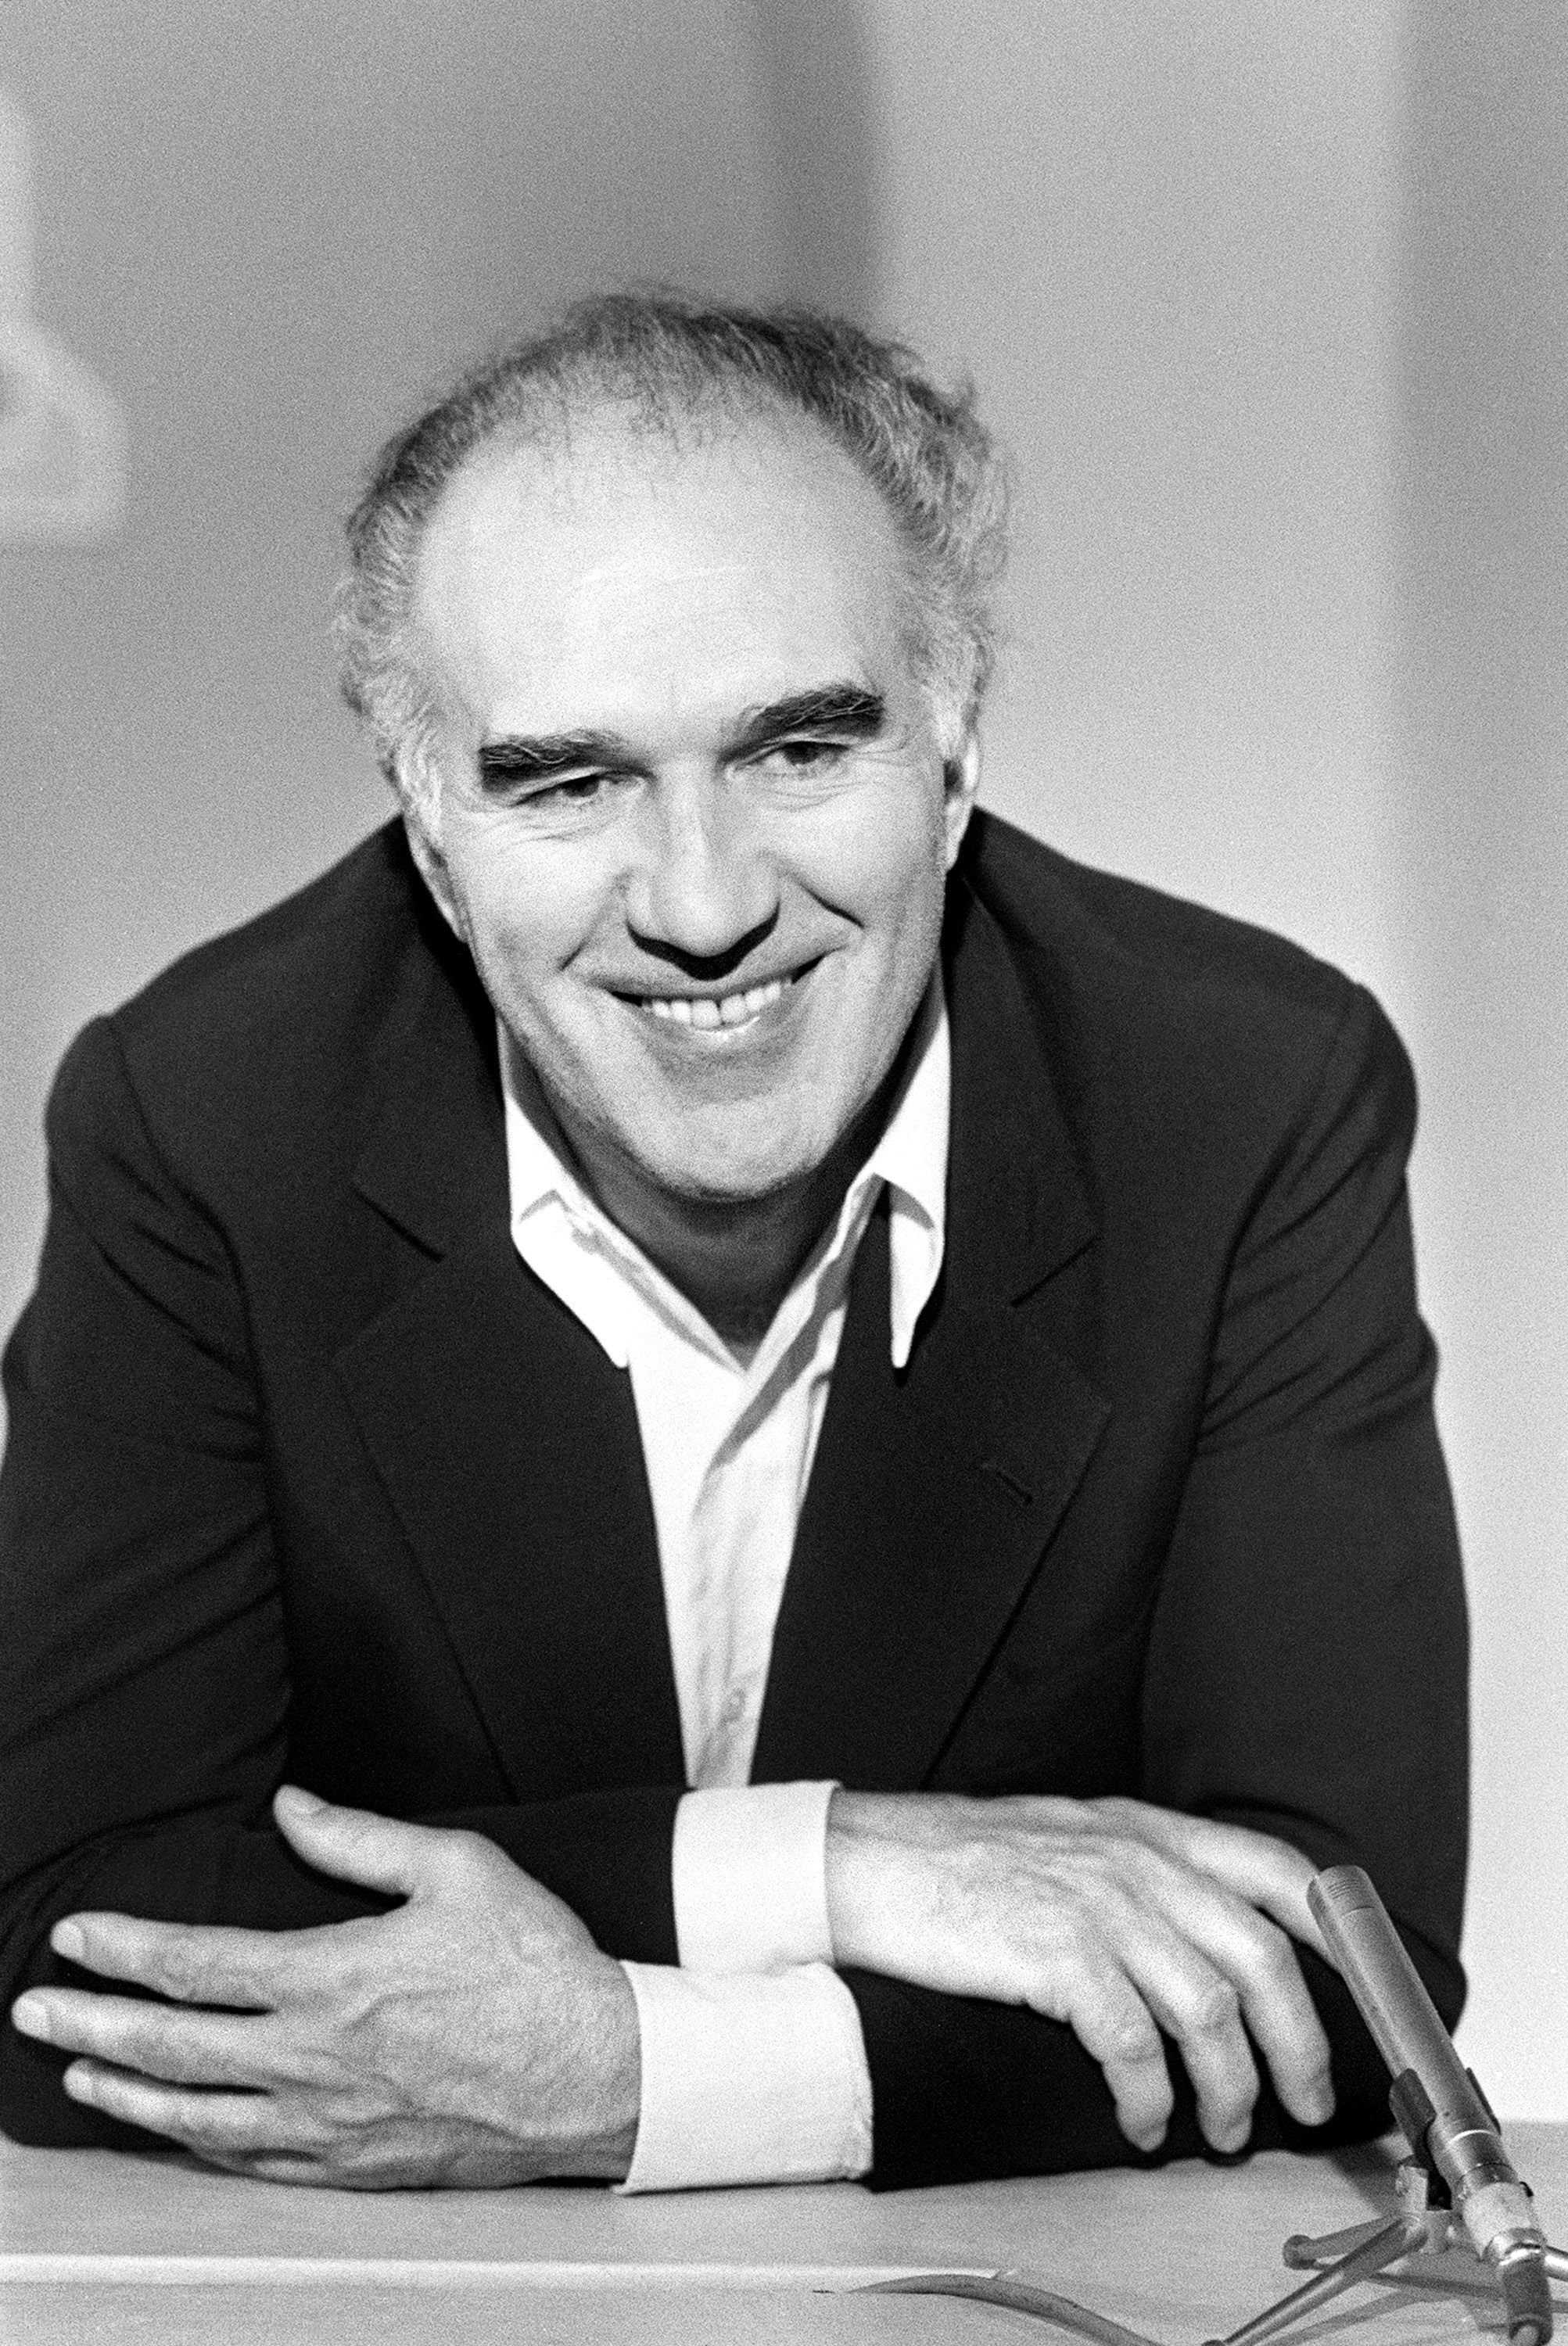 French actor Michel Piccoli poses as he attends attends the television news on French channel TF1 in Paris, June 25,1983. (AFP Photo)